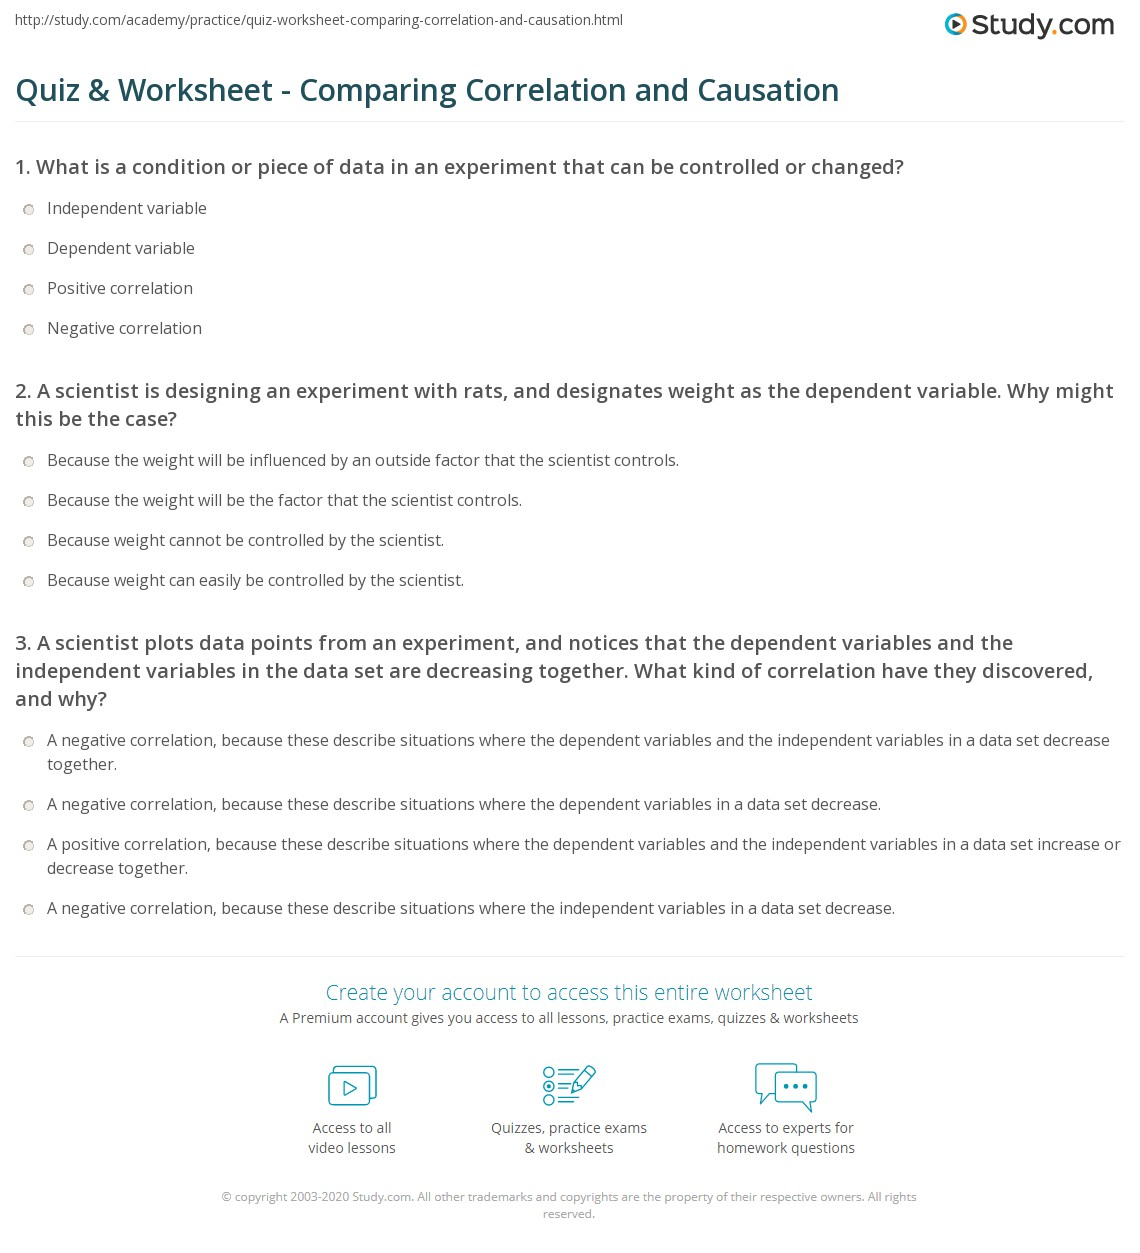 Aldiablosus  Sweet Quiz Amp Worksheet  Comparing Correlation And Causation  Studycom With Luxury Print Correlation Vs Causation Differences Amp Definition Worksheet With Archaic Verbs Worksheets Also Linear Relationships Worksheet In Addition Ecosystem Worksheet And First Grade Science Worksheets As Well As Cell Cycle Coloring Worksheet Additionally Types Of Conflict Worksheet From Studycom With Aldiablosus  Luxury Quiz Amp Worksheet  Comparing Correlation And Causation  Studycom With Archaic Print Correlation Vs Causation Differences Amp Definition Worksheet And Sweet Verbs Worksheets Also Linear Relationships Worksheet In Addition Ecosystem Worksheet From Studycom